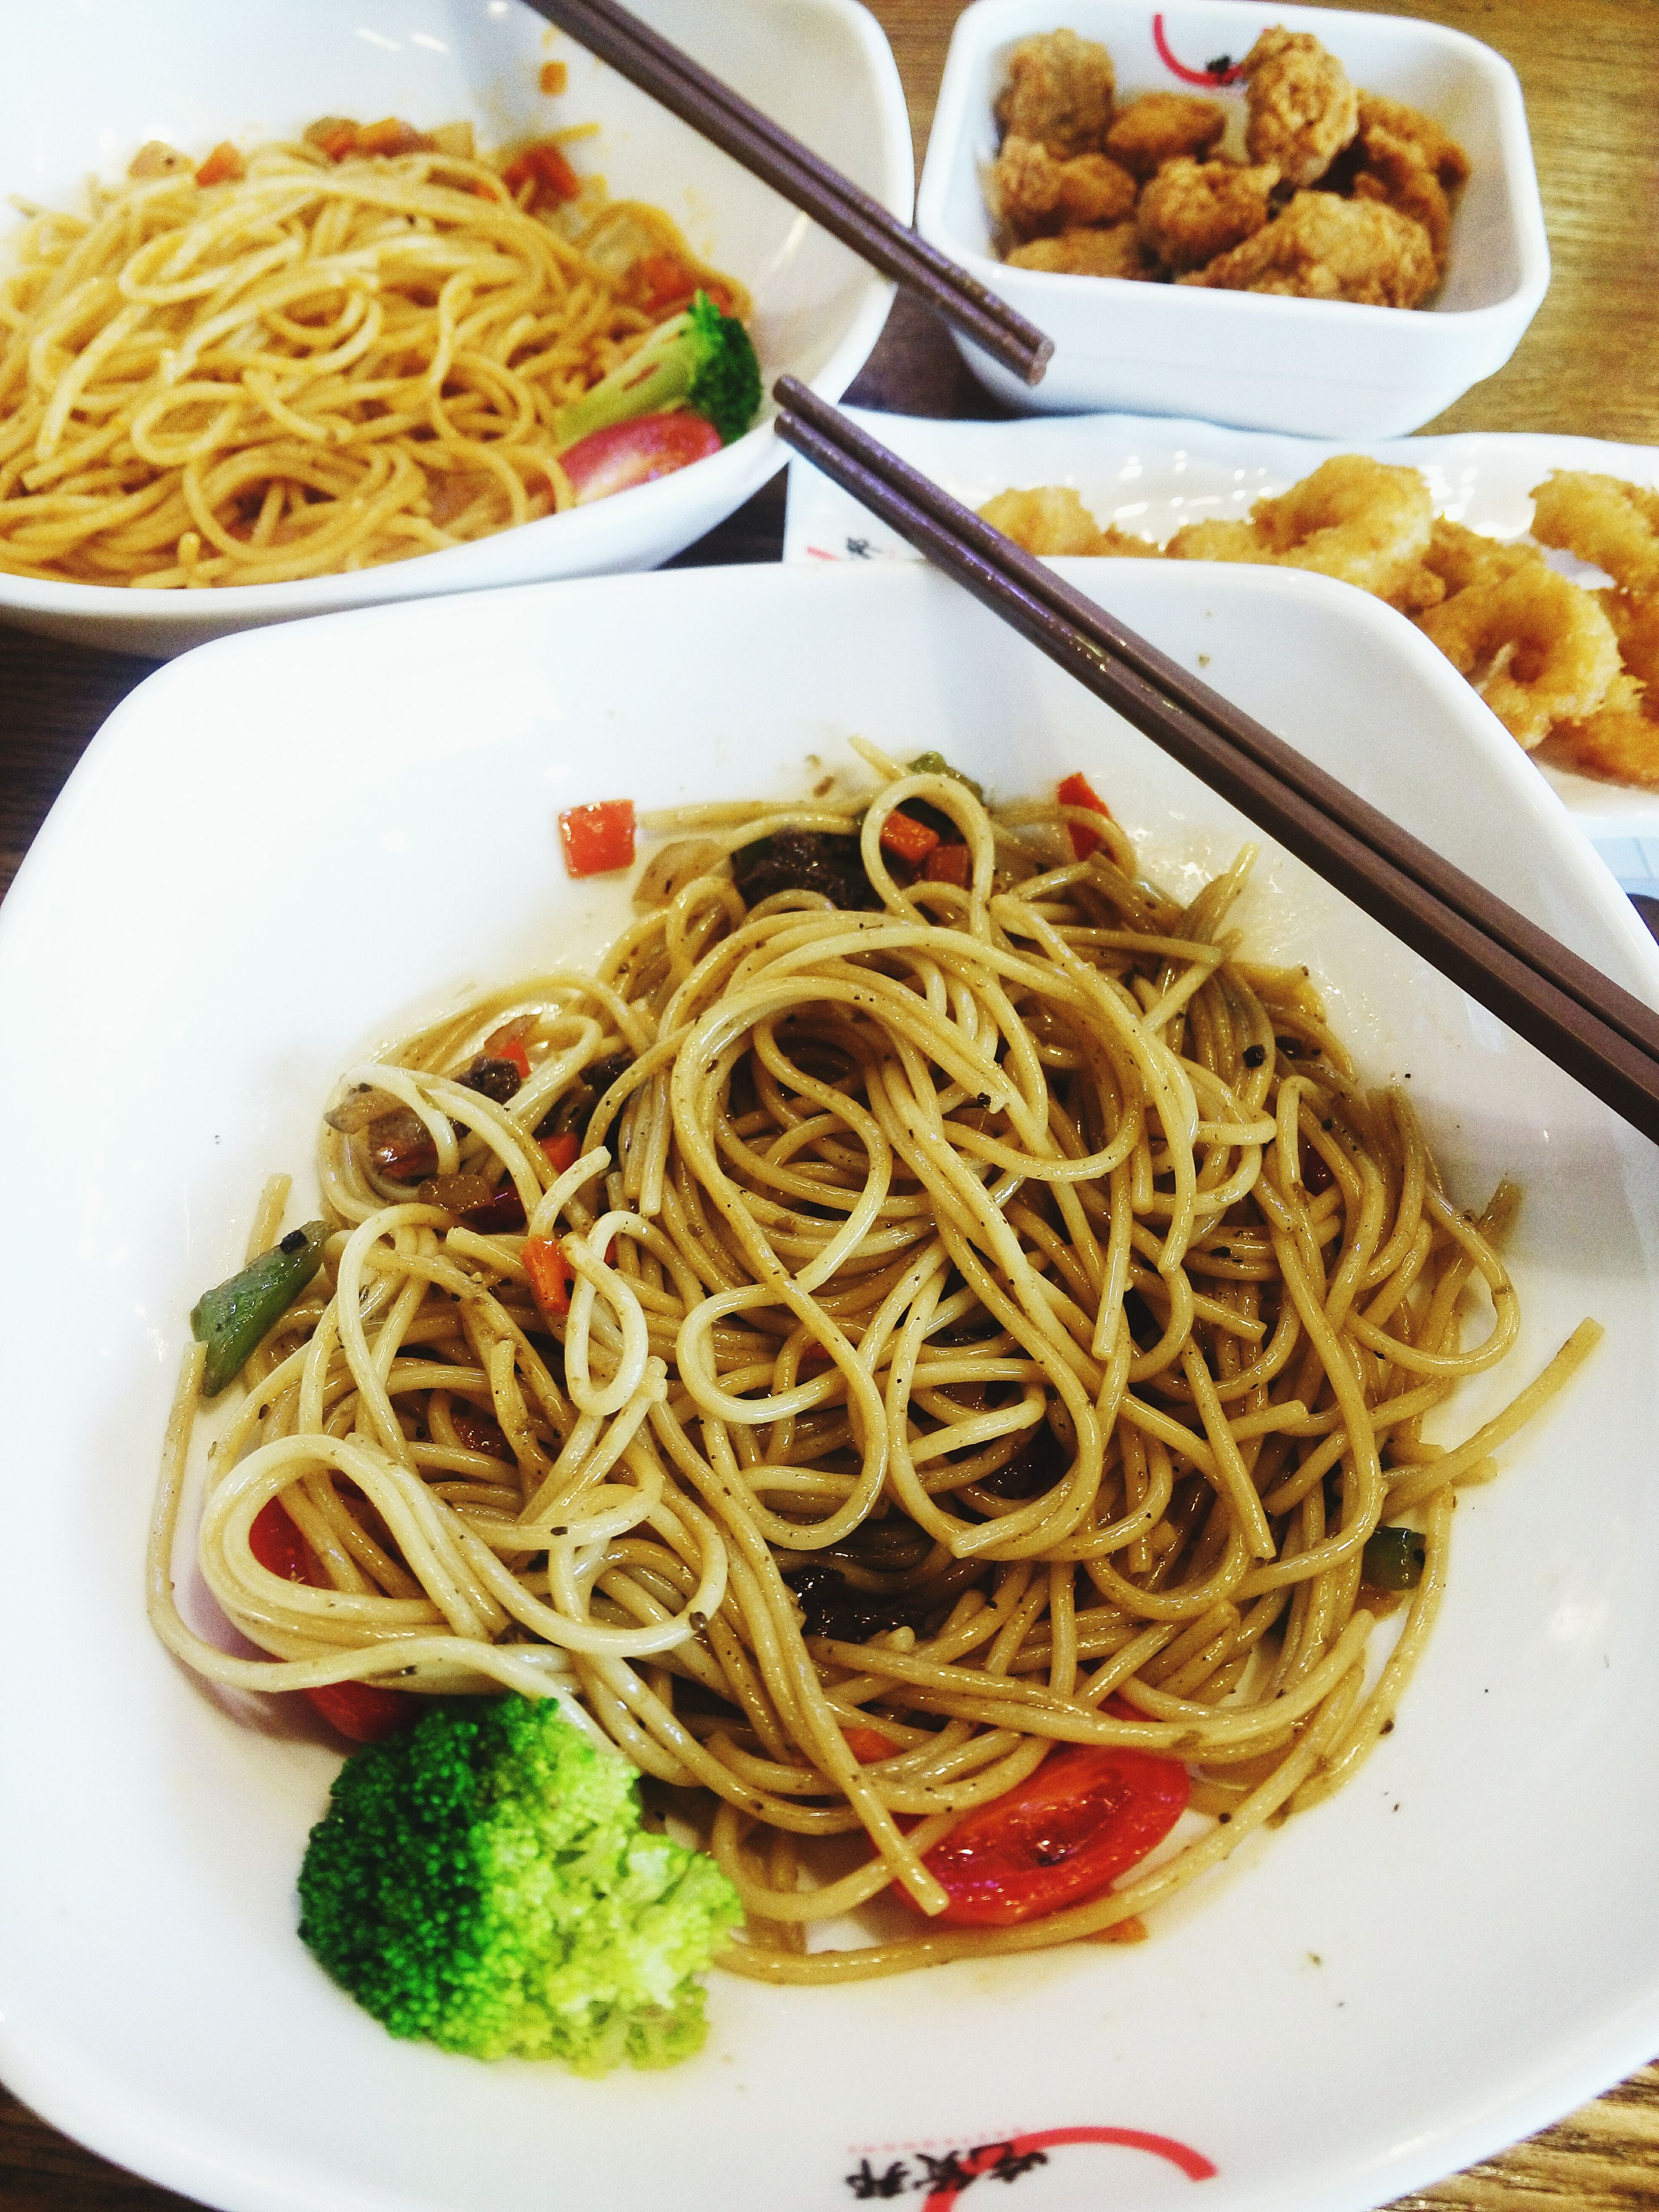 food, food and drink, indoors, freshness, ready-to-eat, plate, healthy eating, noodles, meal, pasta, still life, serving size, high angle view, close-up, vegetable, table, bowl, spaghetti, italian food, cooked